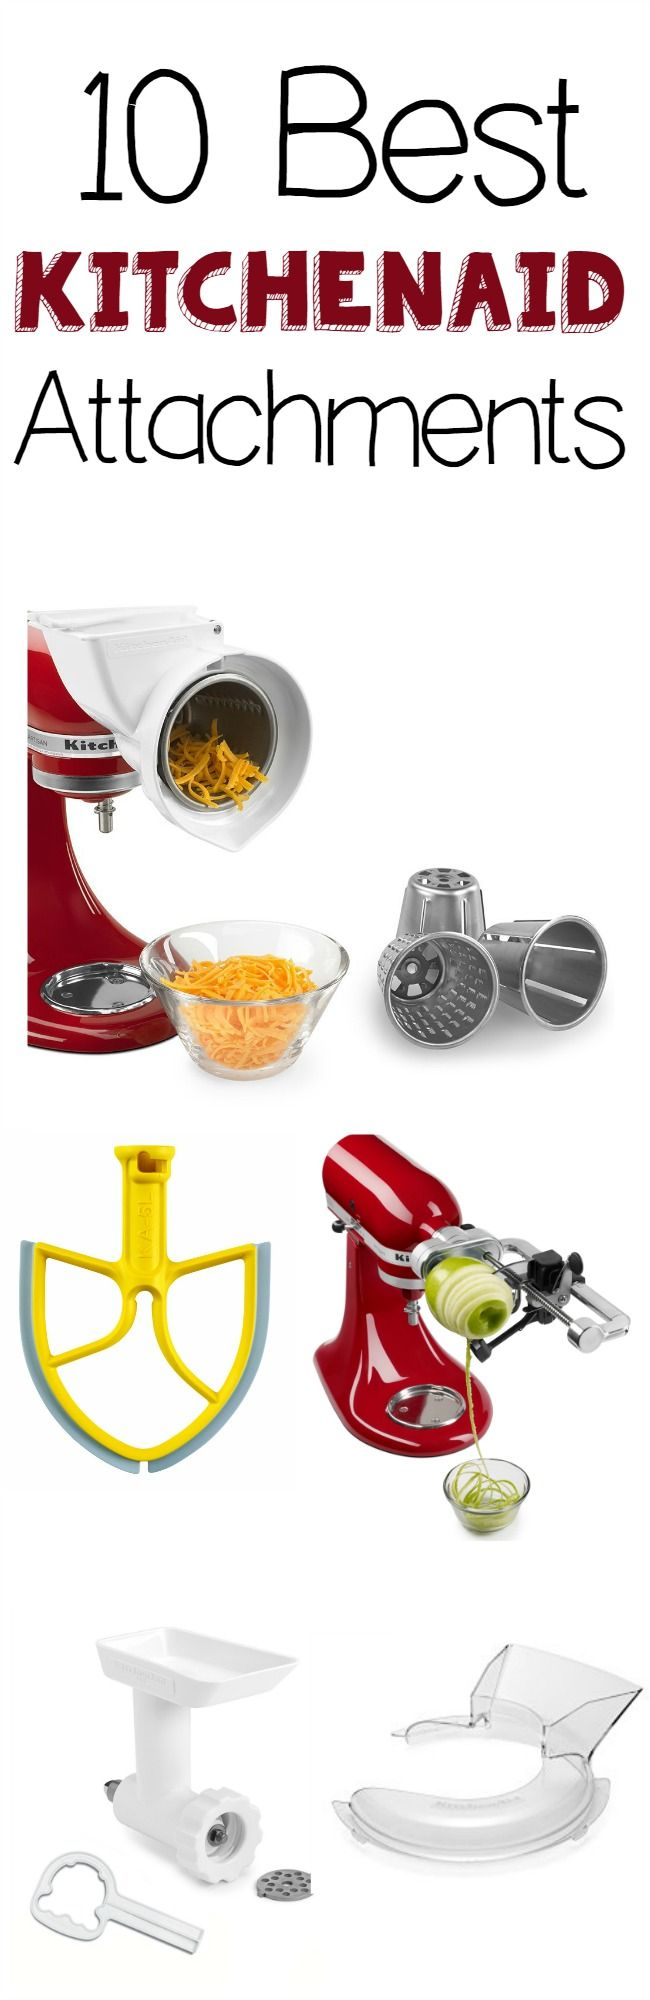 10 BEST kitchenaid attachments! Have a Kitchenaid Check out these great attachments and what they do!